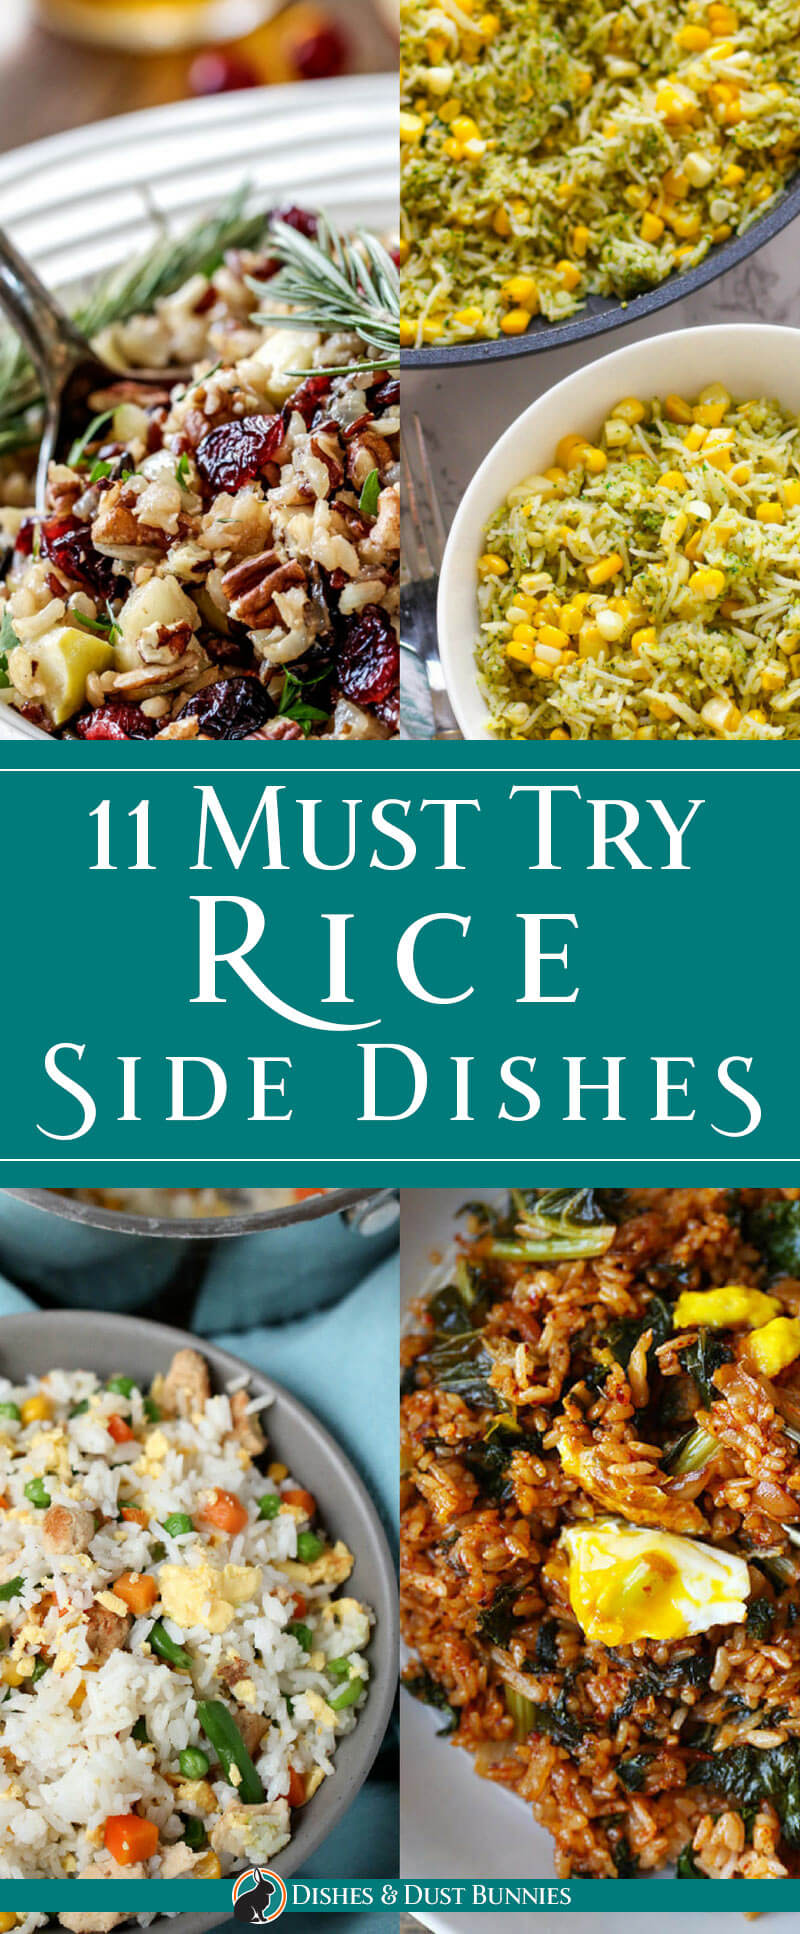 11 Must Try Rice Side Dishes - dishesanddustbunnies.com